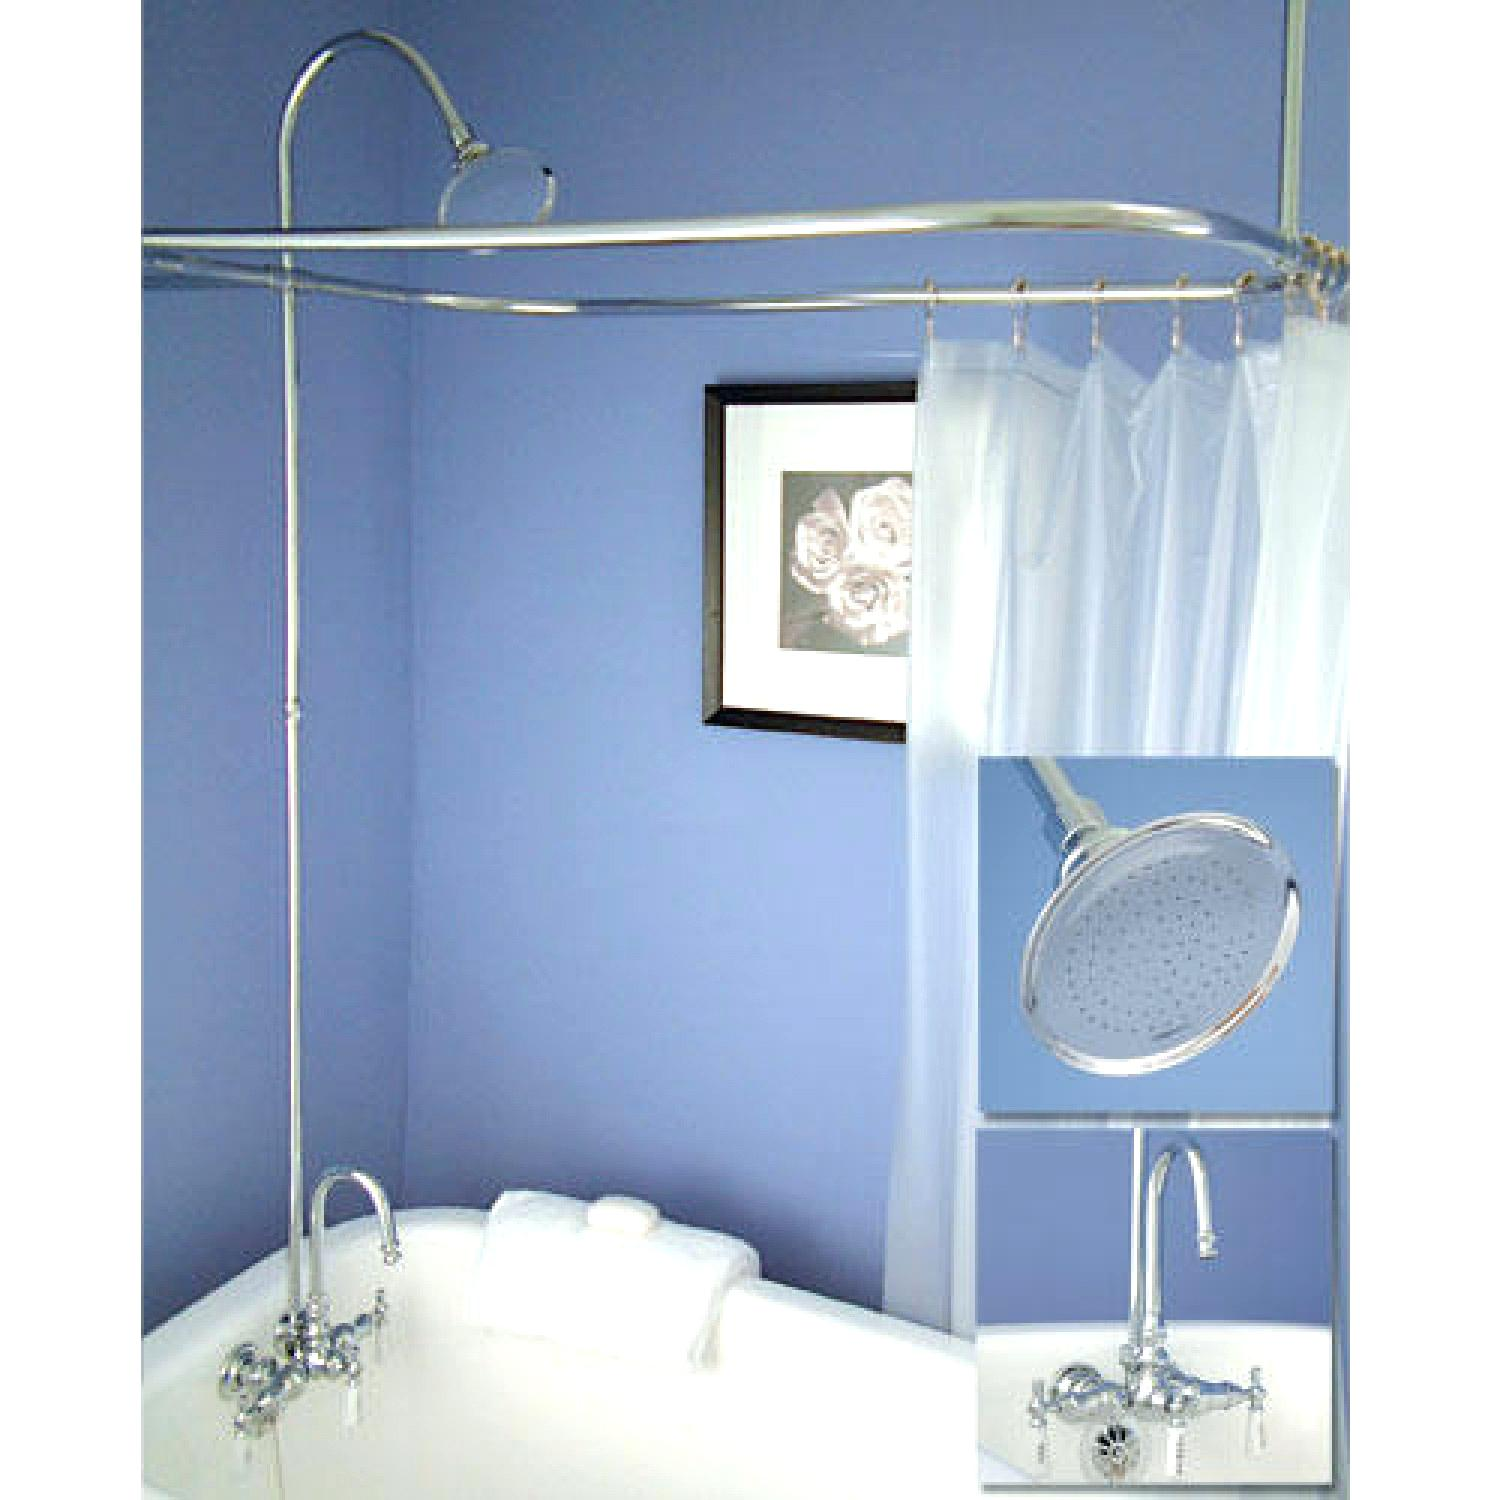 Surround Shower Curtain | Clawfoot Tub Shower Curtain | Clawfoot Tub Shower Liner